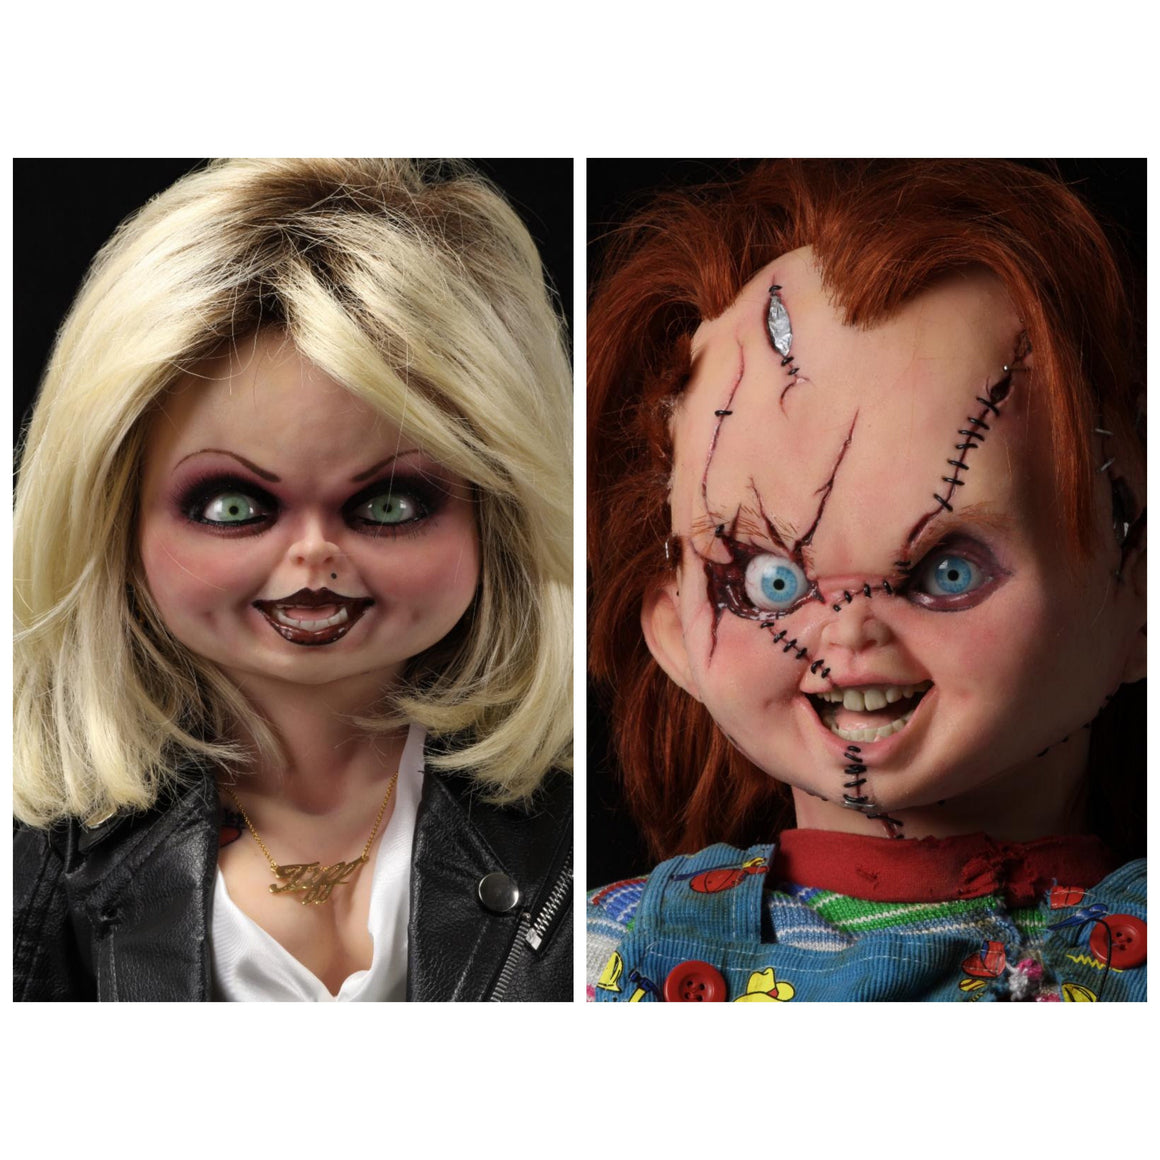 Bride of Chucky - 1:1 Replica - Life-Size - Set of 2 - FEBRUARY 2020